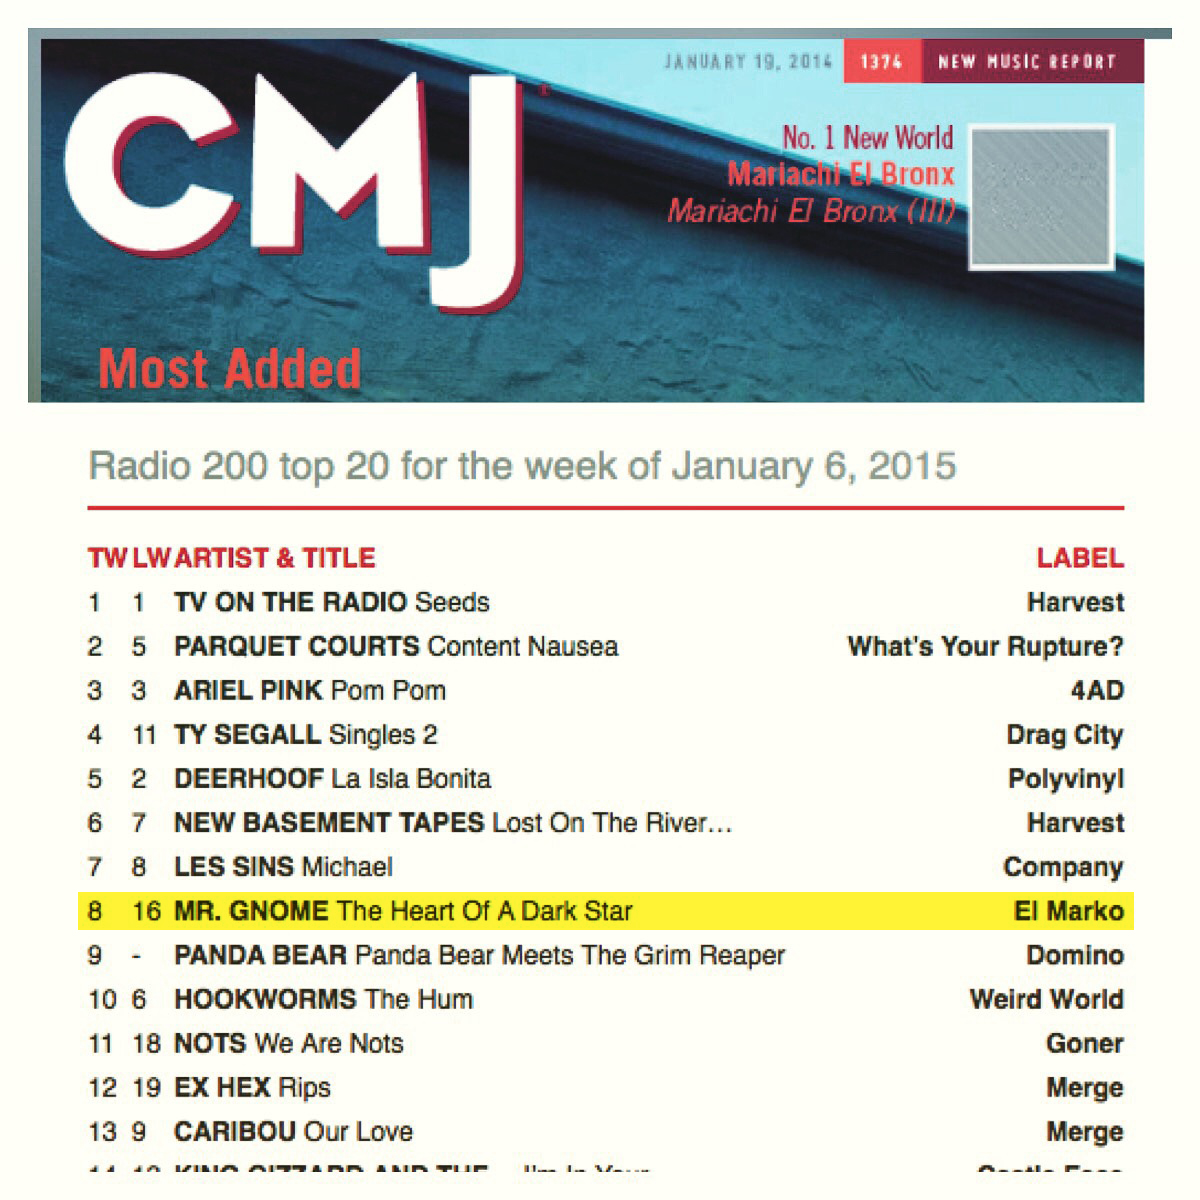 CMJ - The Heart of a Dark Star #8 on Radio 200 Top 20January 2015